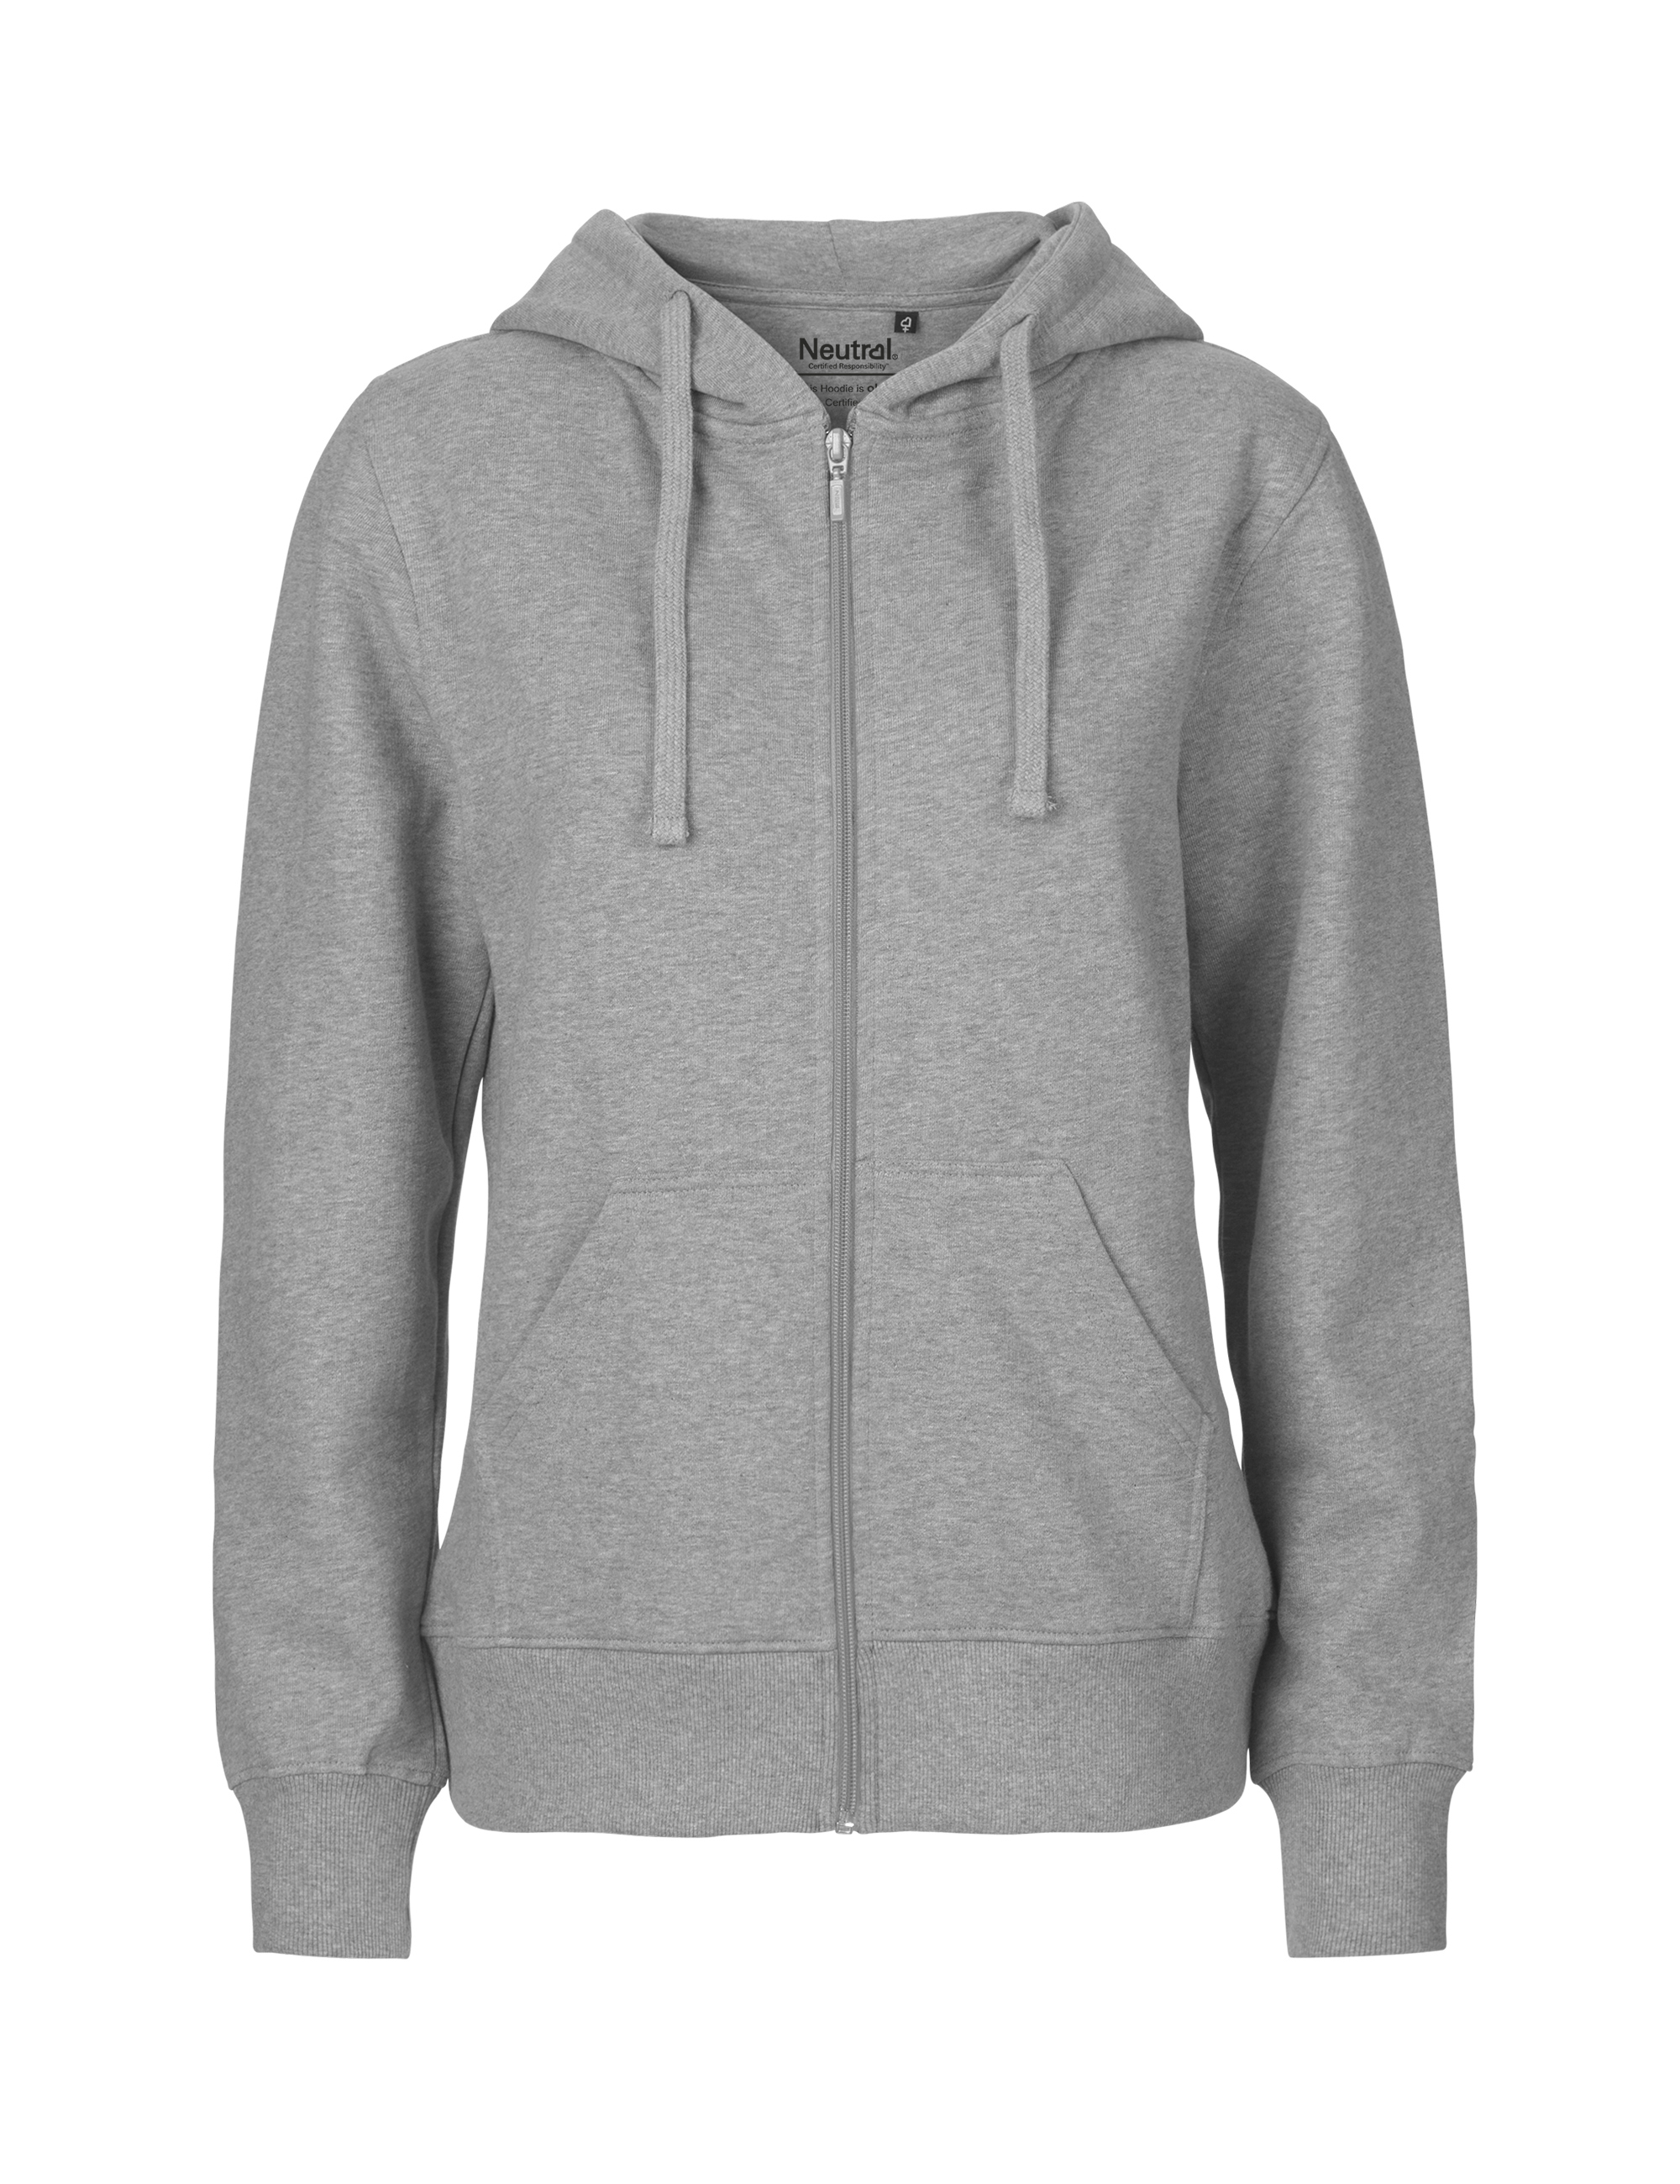 O83301 Ladies Hoodie w. Zip i Sport Grey